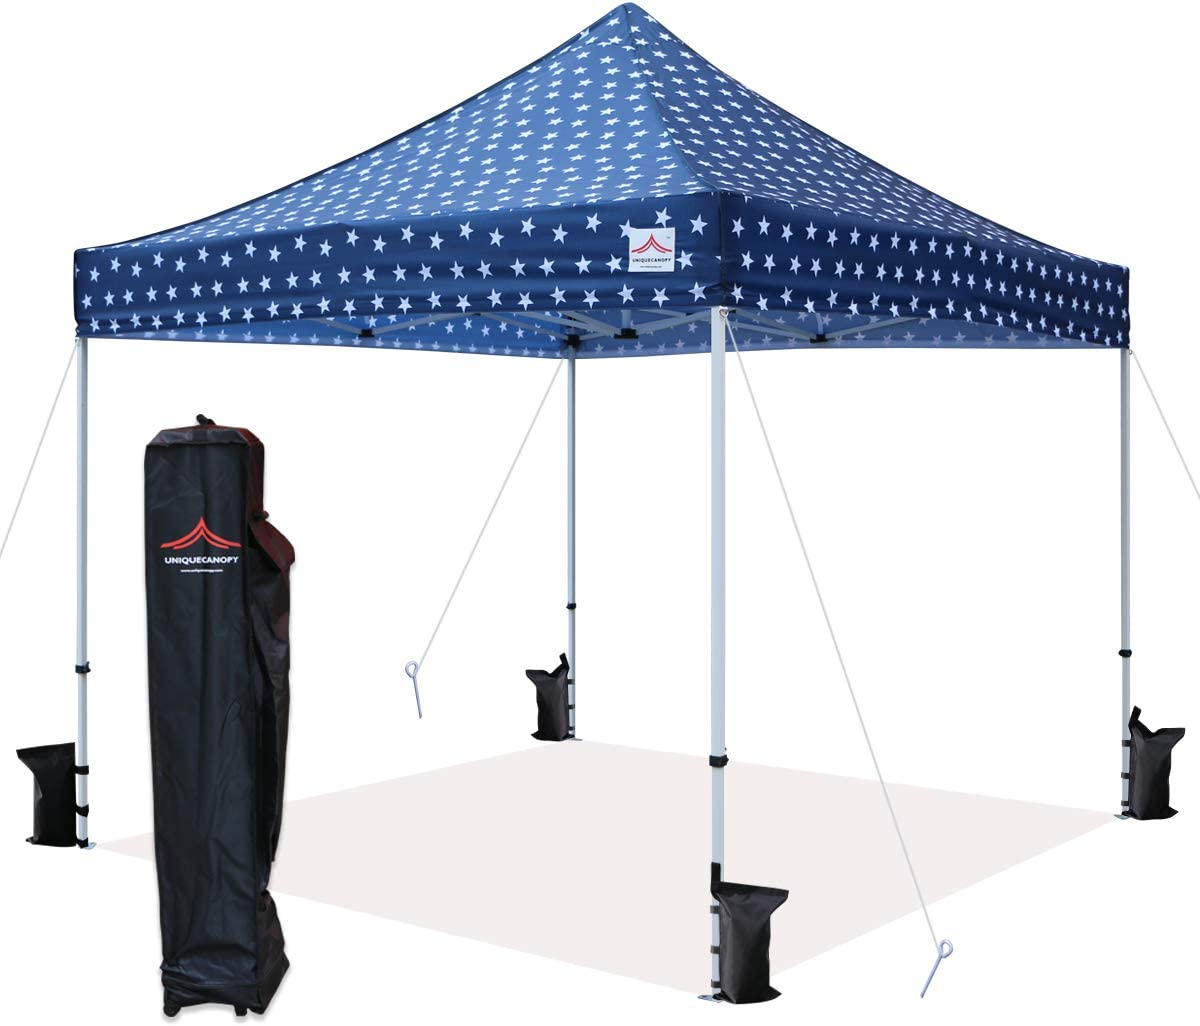 UNIQUECANOPY 10×10 Ez Pop Up Canopy Tent Commercial Instant Shelter with Heavy Duty Roller Bag, 4 Canopy Sand Bags, 10×10 FT Navy Blue Star